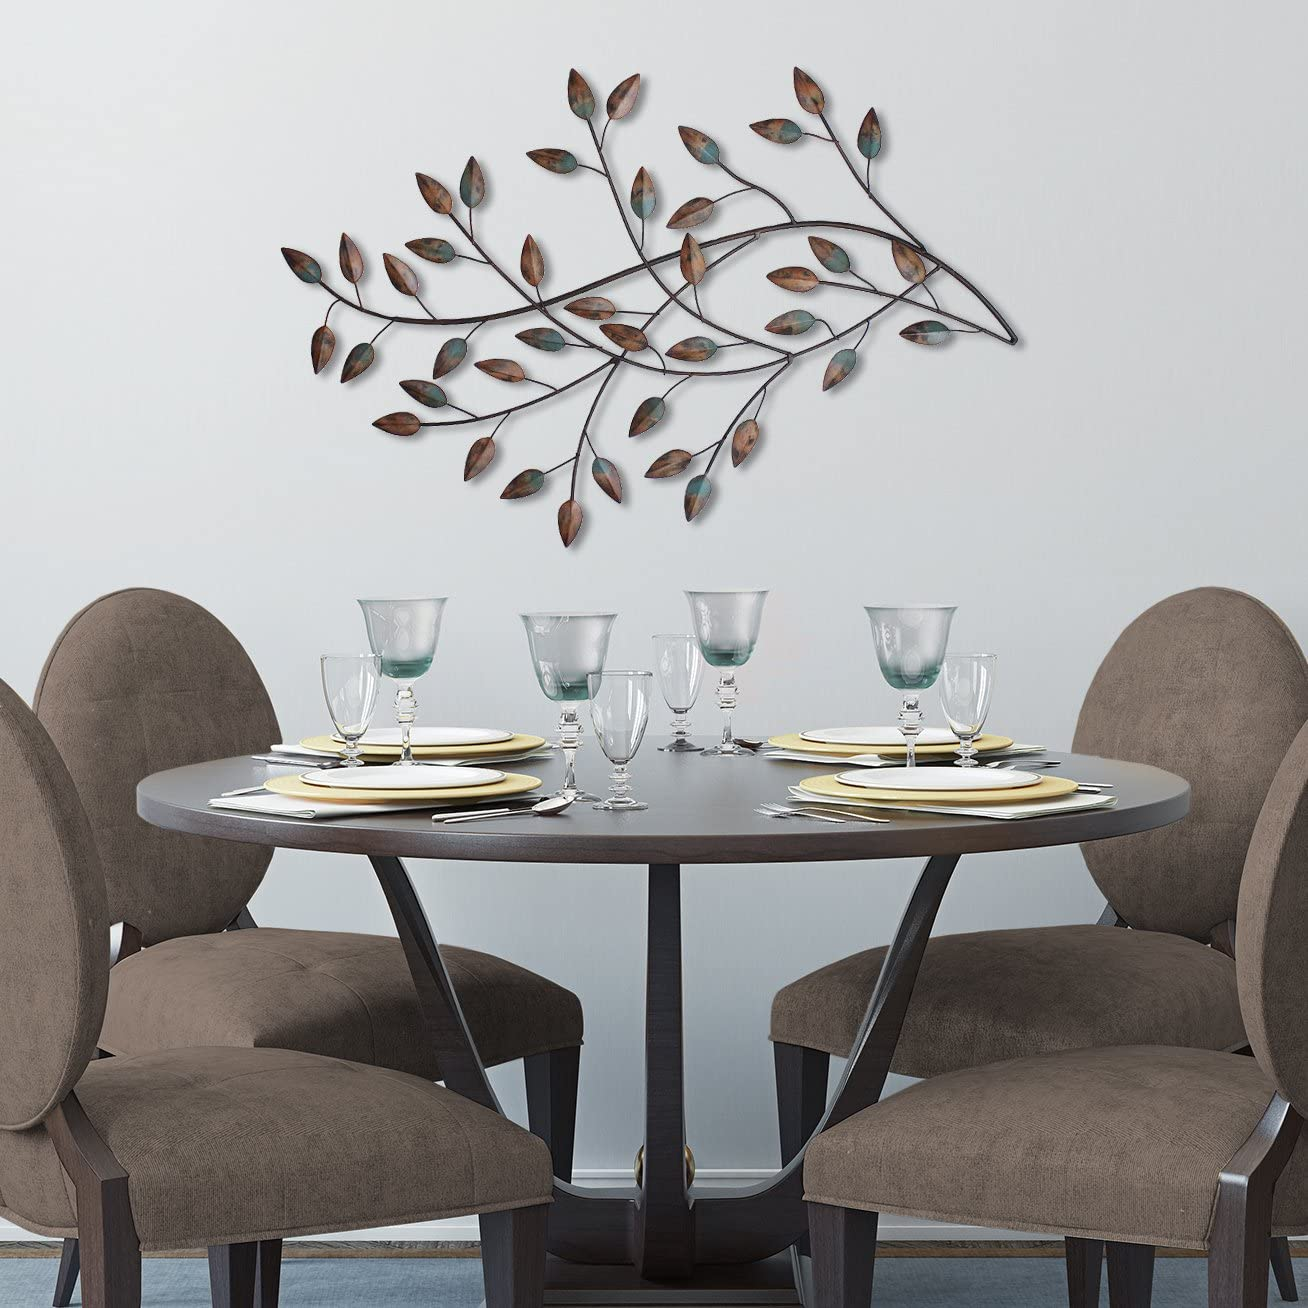 Stratton Home D/écor SHD0119 Blowing Leaves Wall Decor